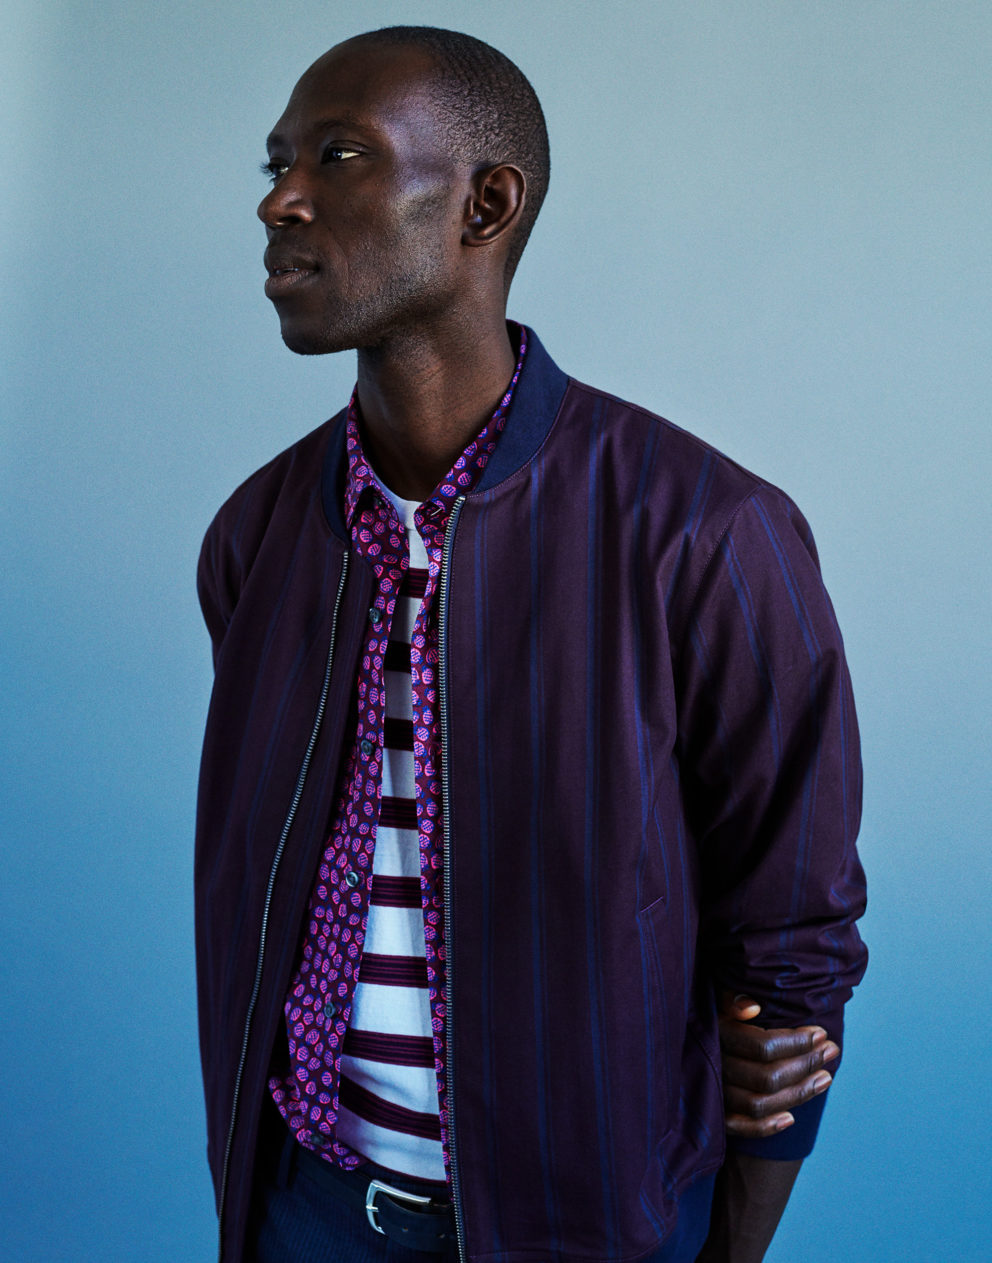 190626 0160 Bonobos Denim And Styleguide Armando Cabral 124 By Christian Hogstedt Web